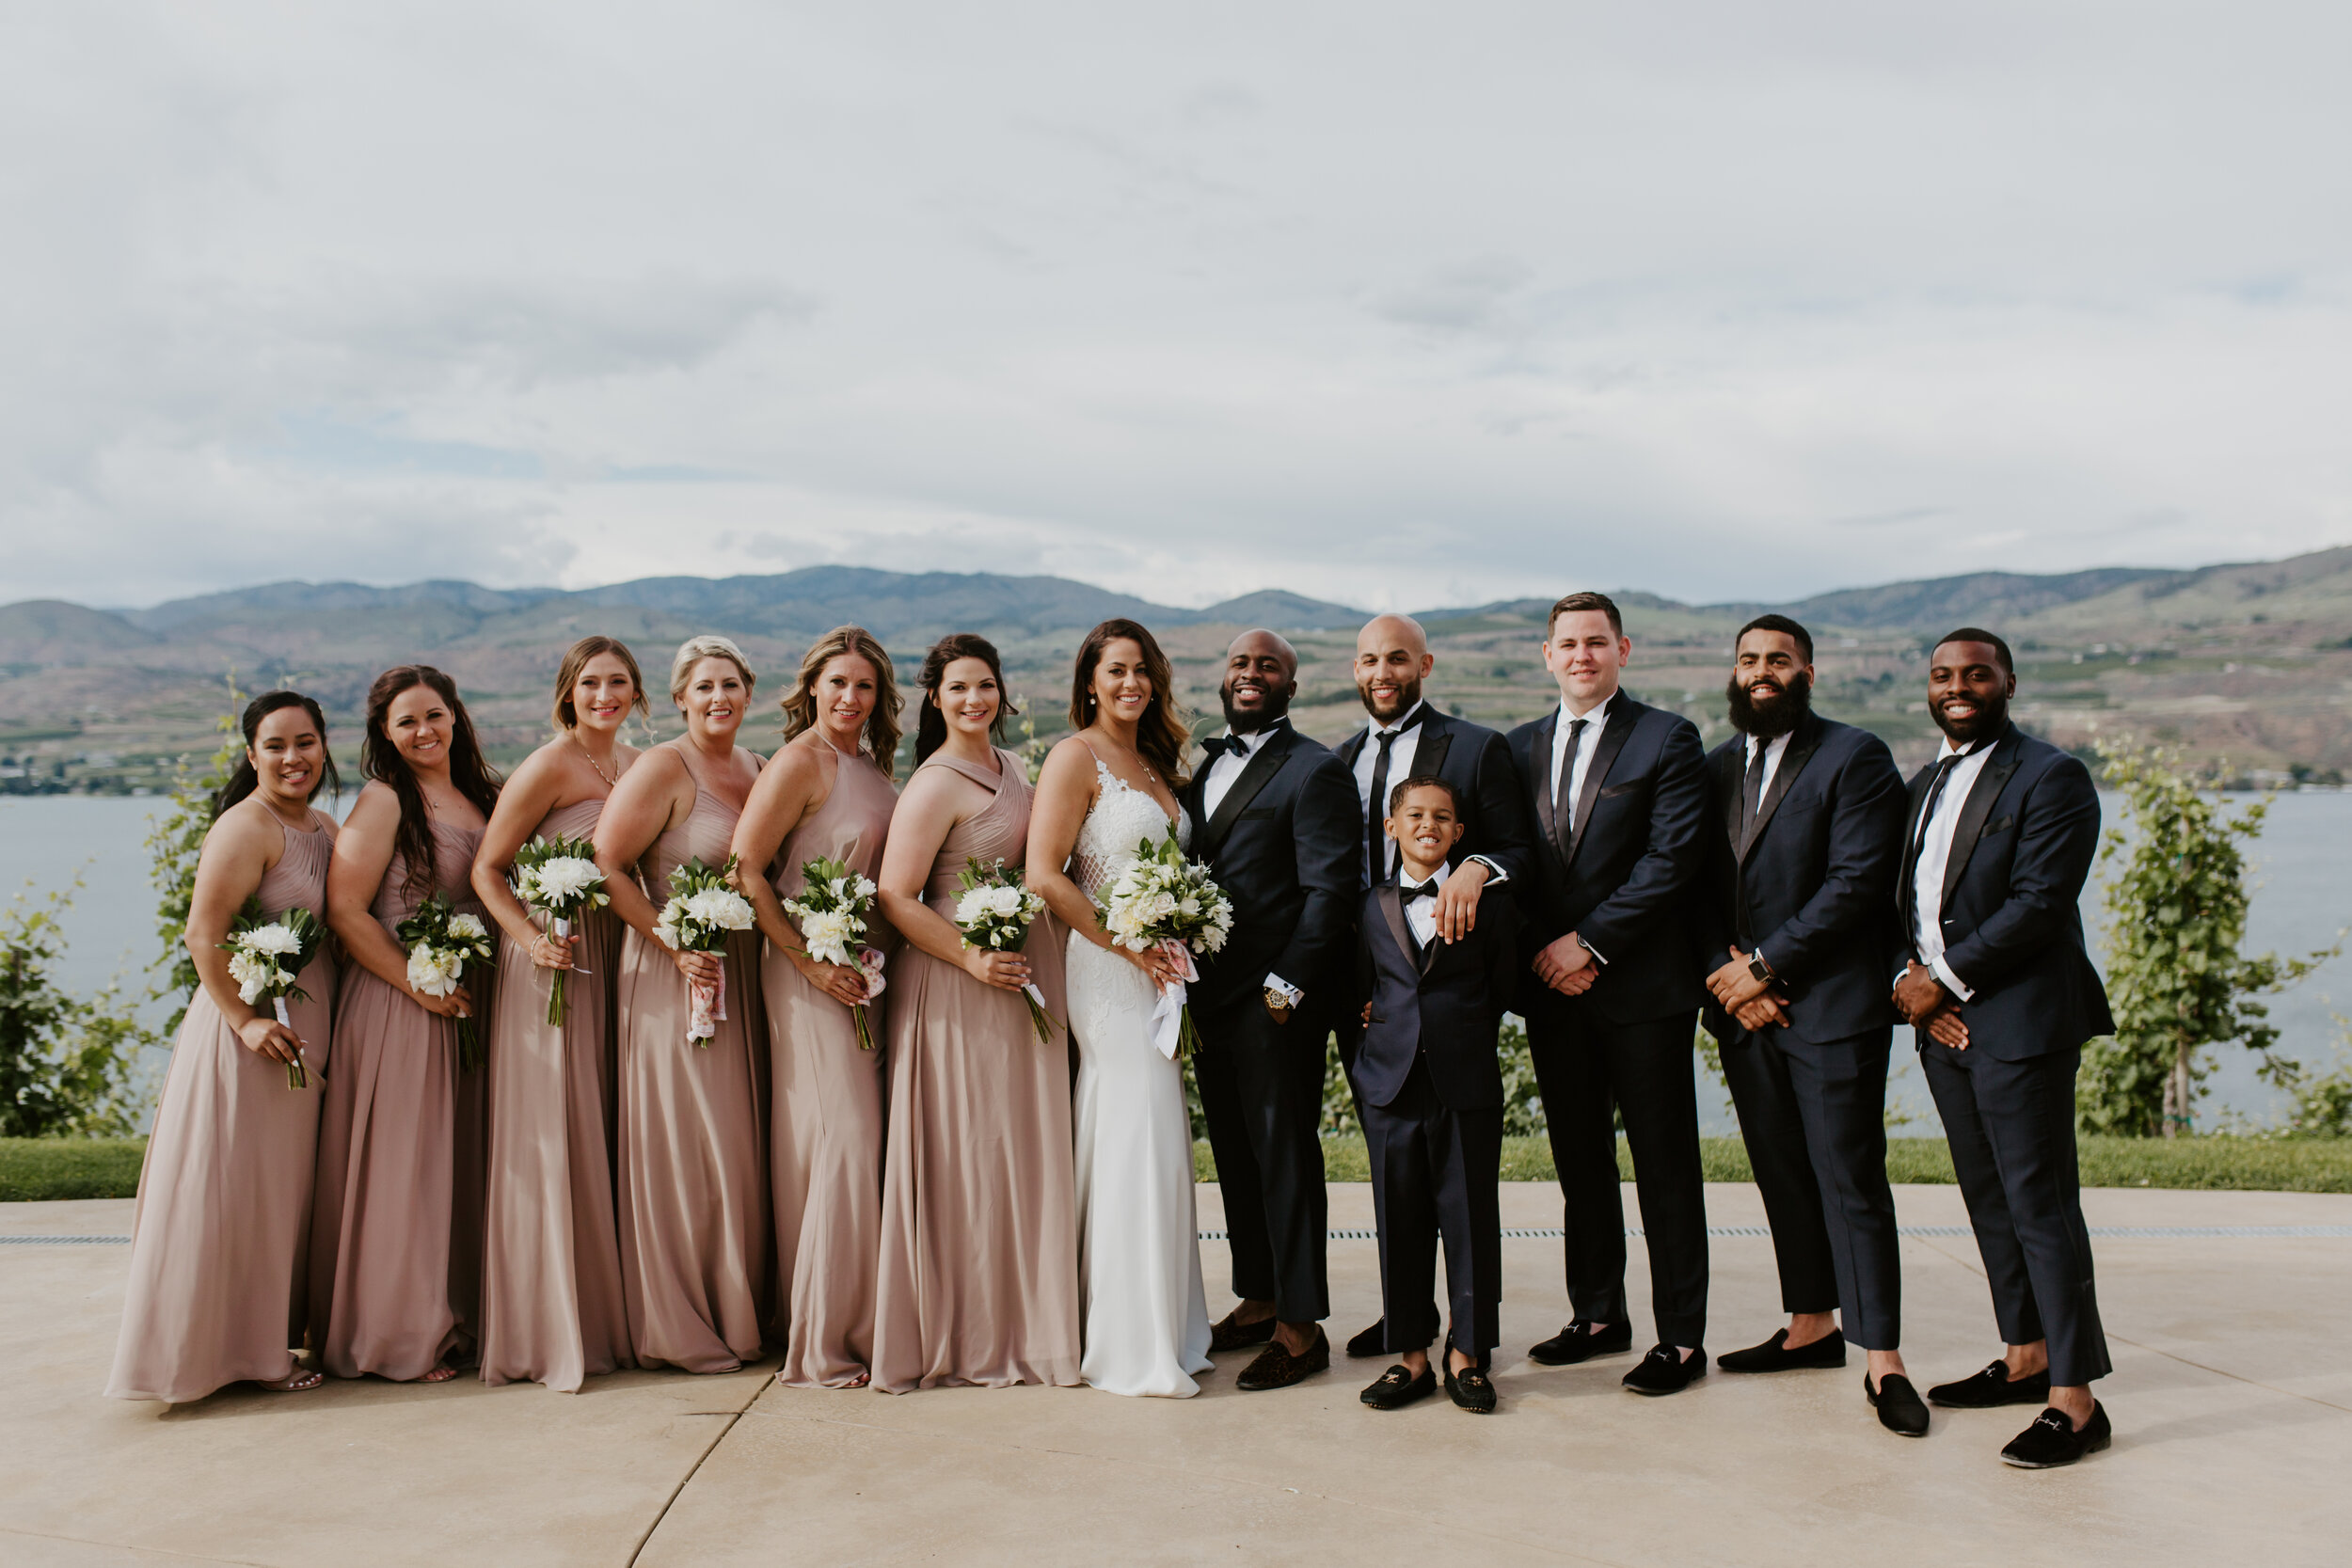 The Patton Wedding - Danielle and QueVonshe - Karma Vineyards - Chelan, Washington - June 7th - Meme Urbane Photography_-1545.jpg